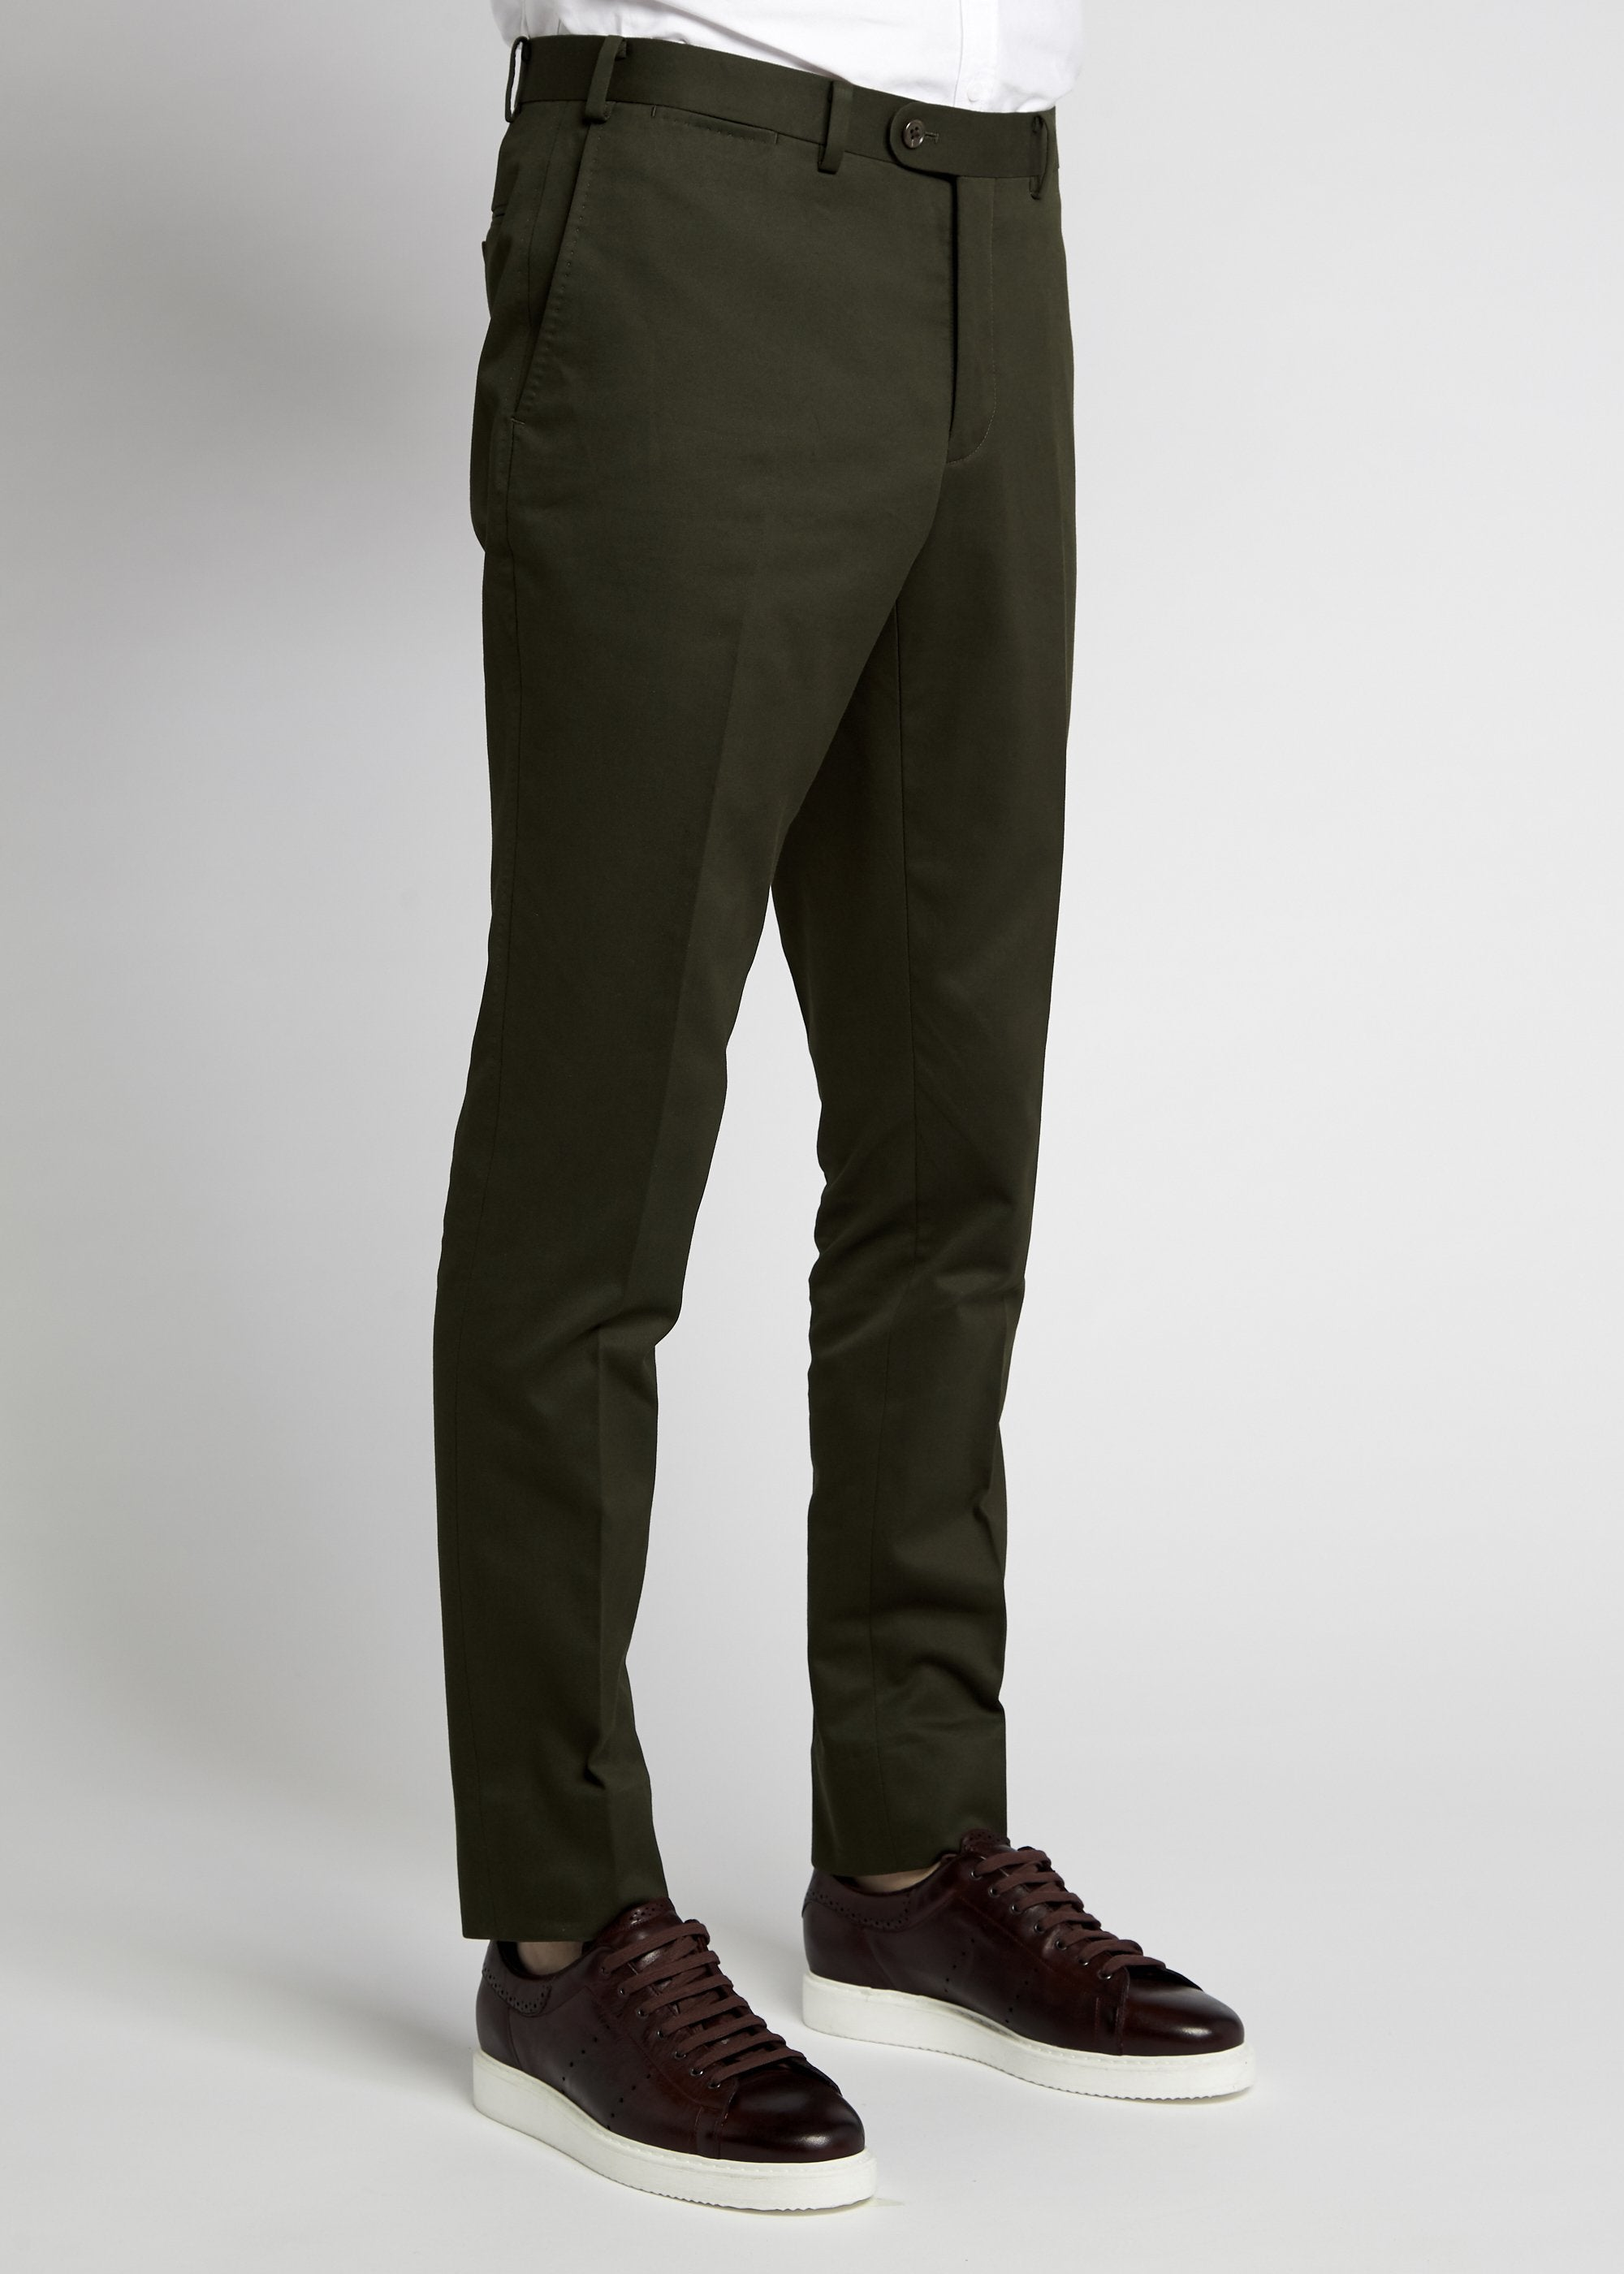 Xander Trouser - Olive Twill